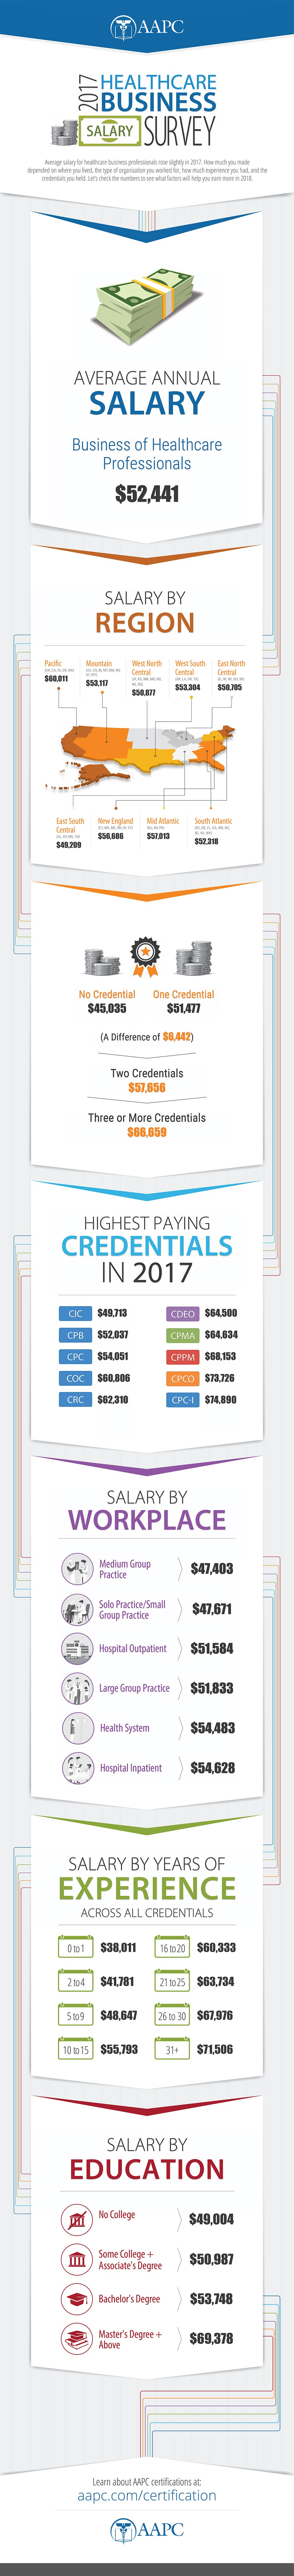 2017 healthcare salary survey